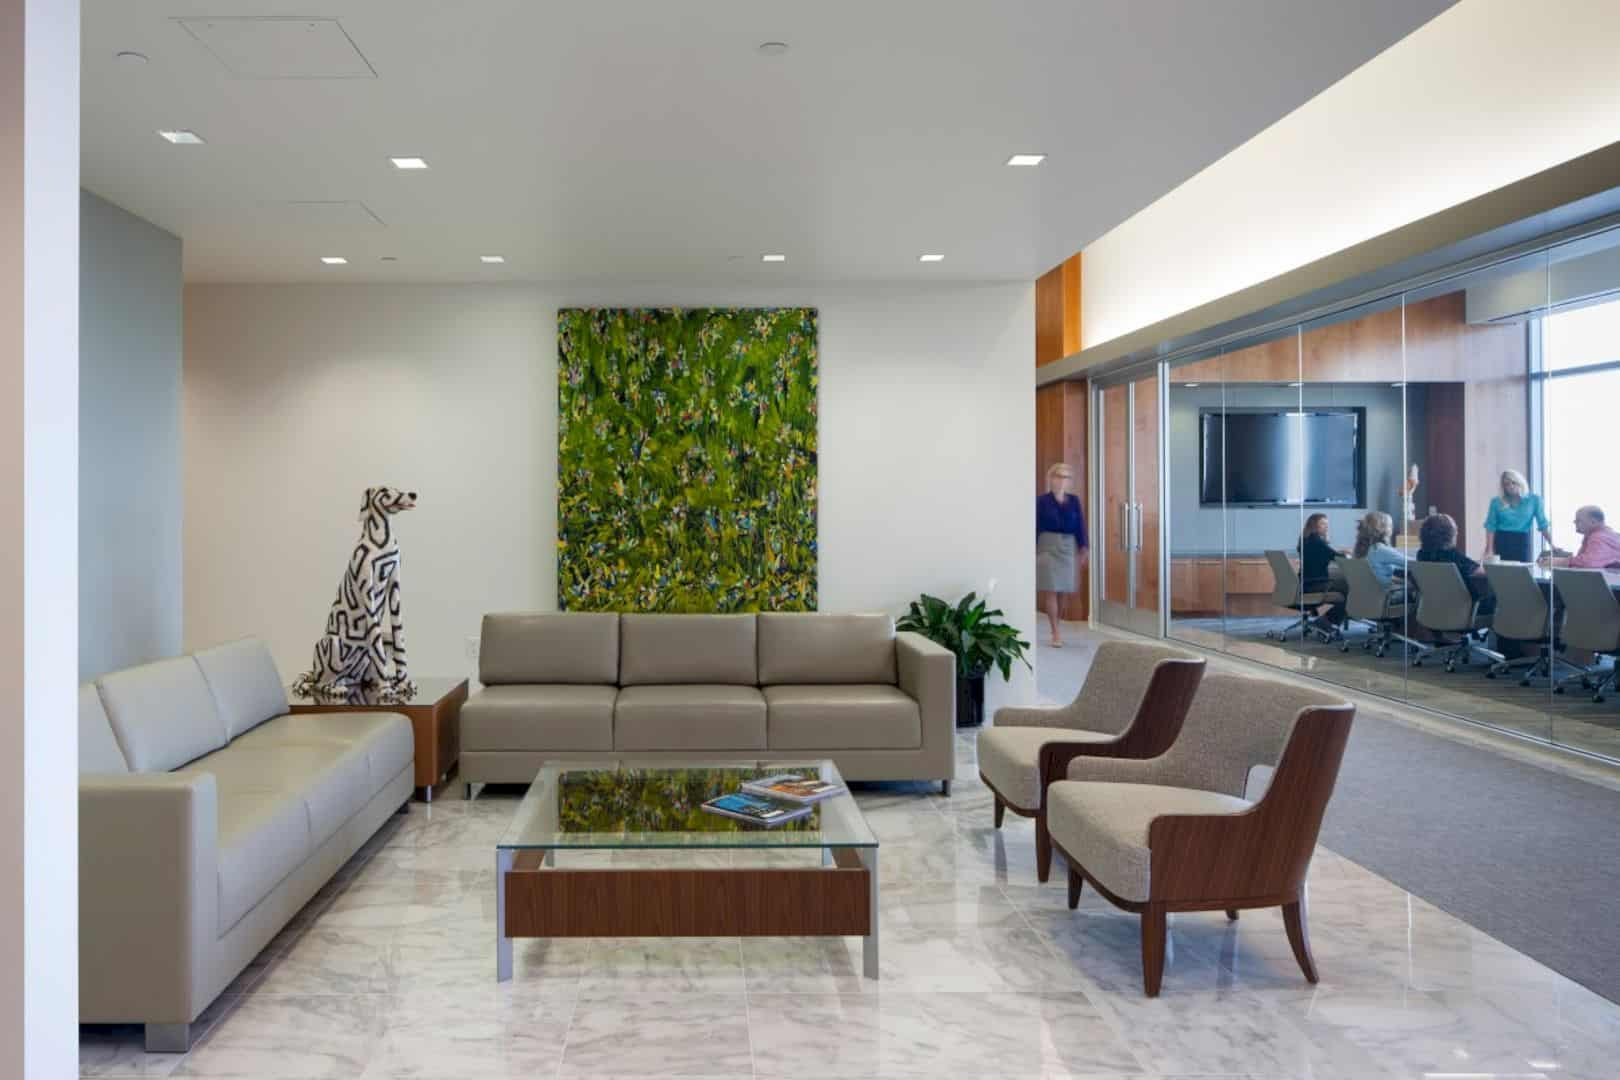 Nossaman Llp A Workplace That Introduces Aerial Experience 4